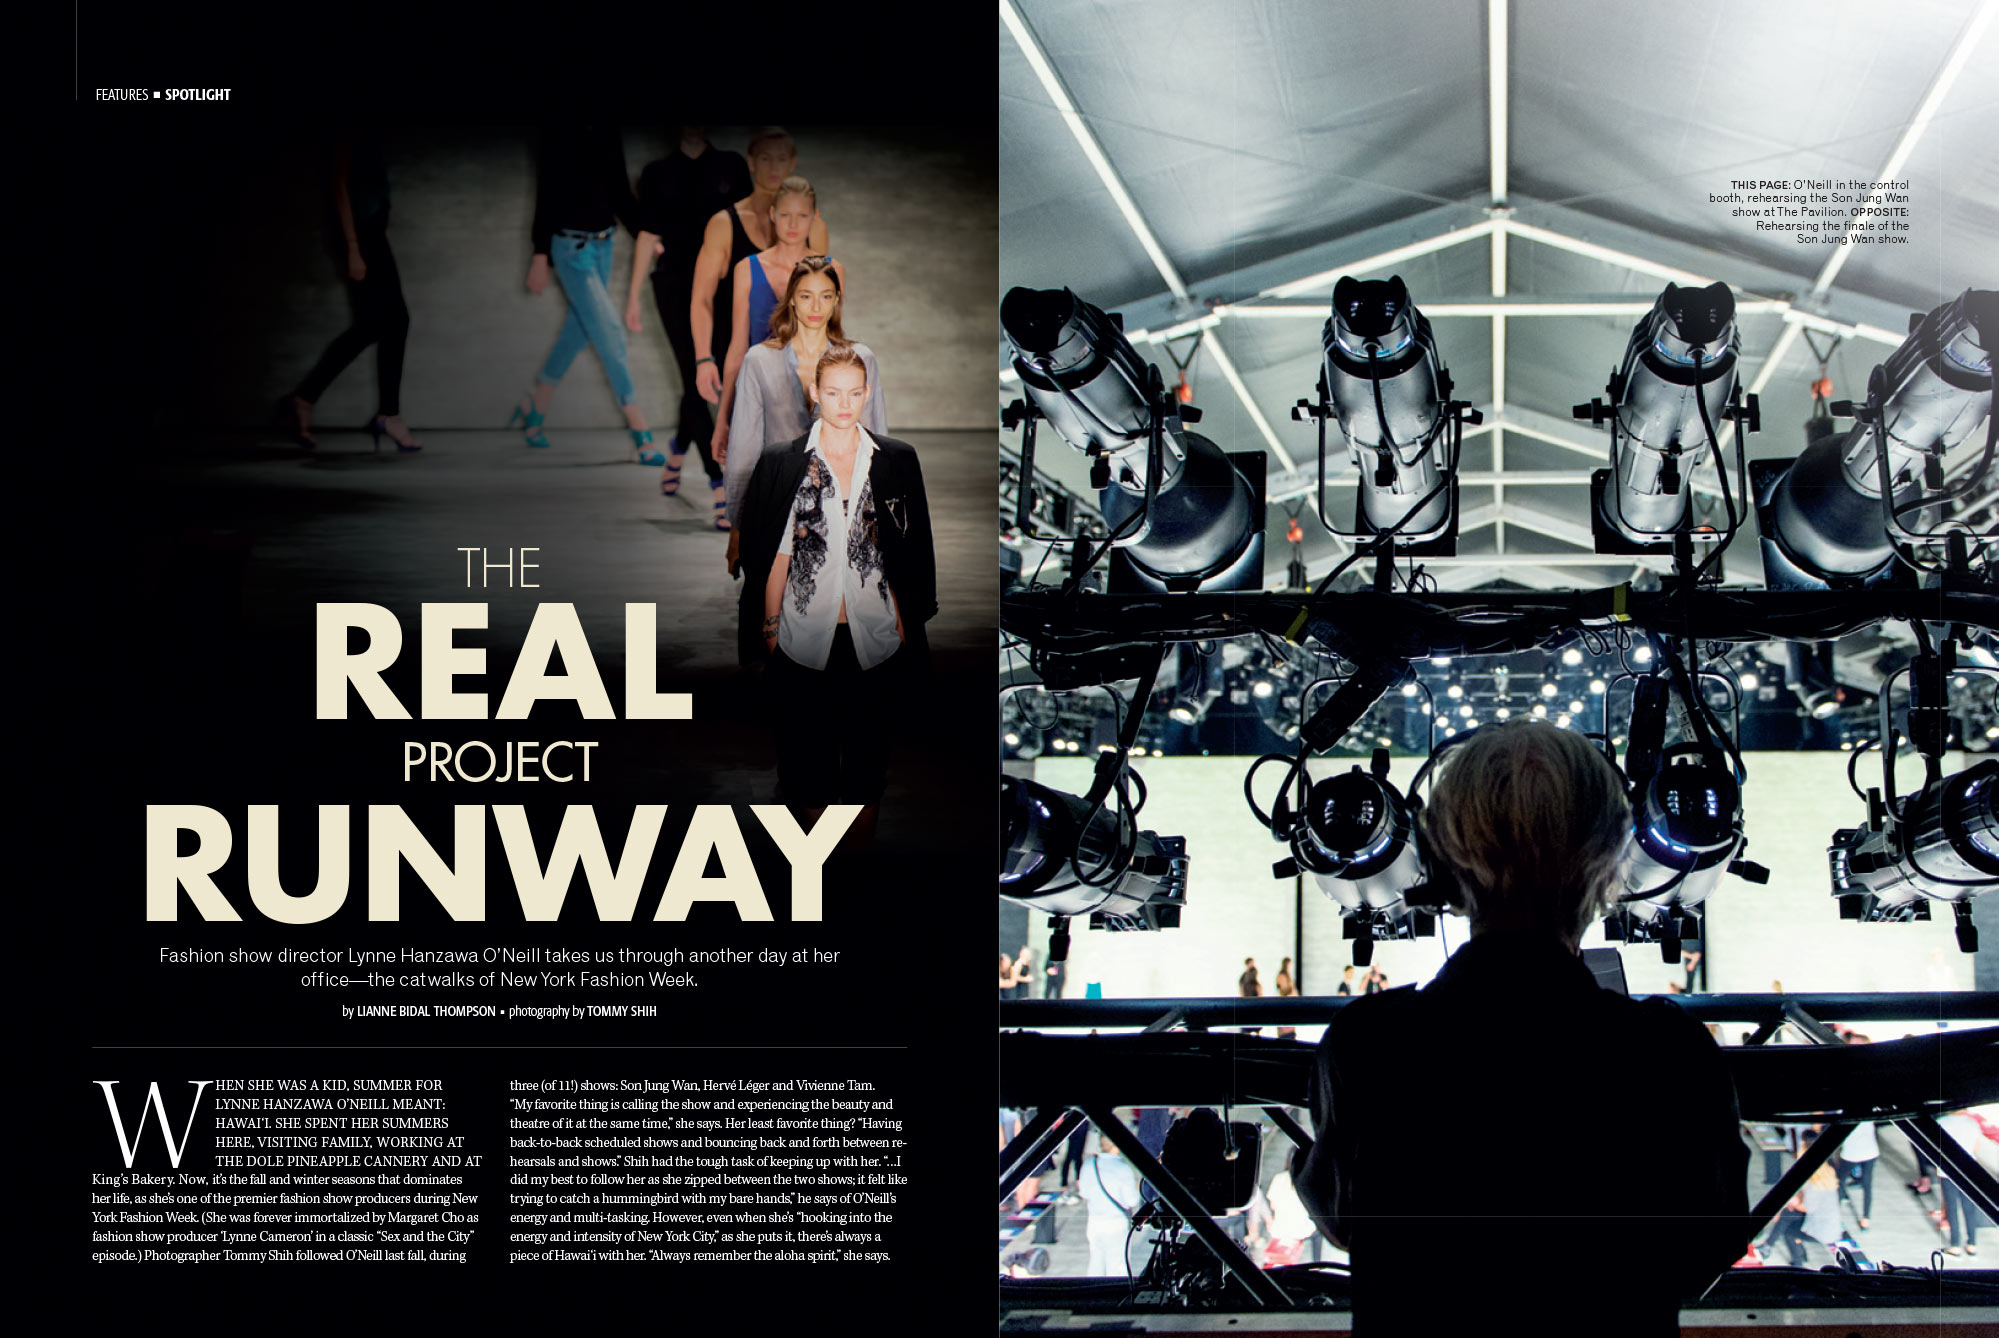 The Real Project Runway